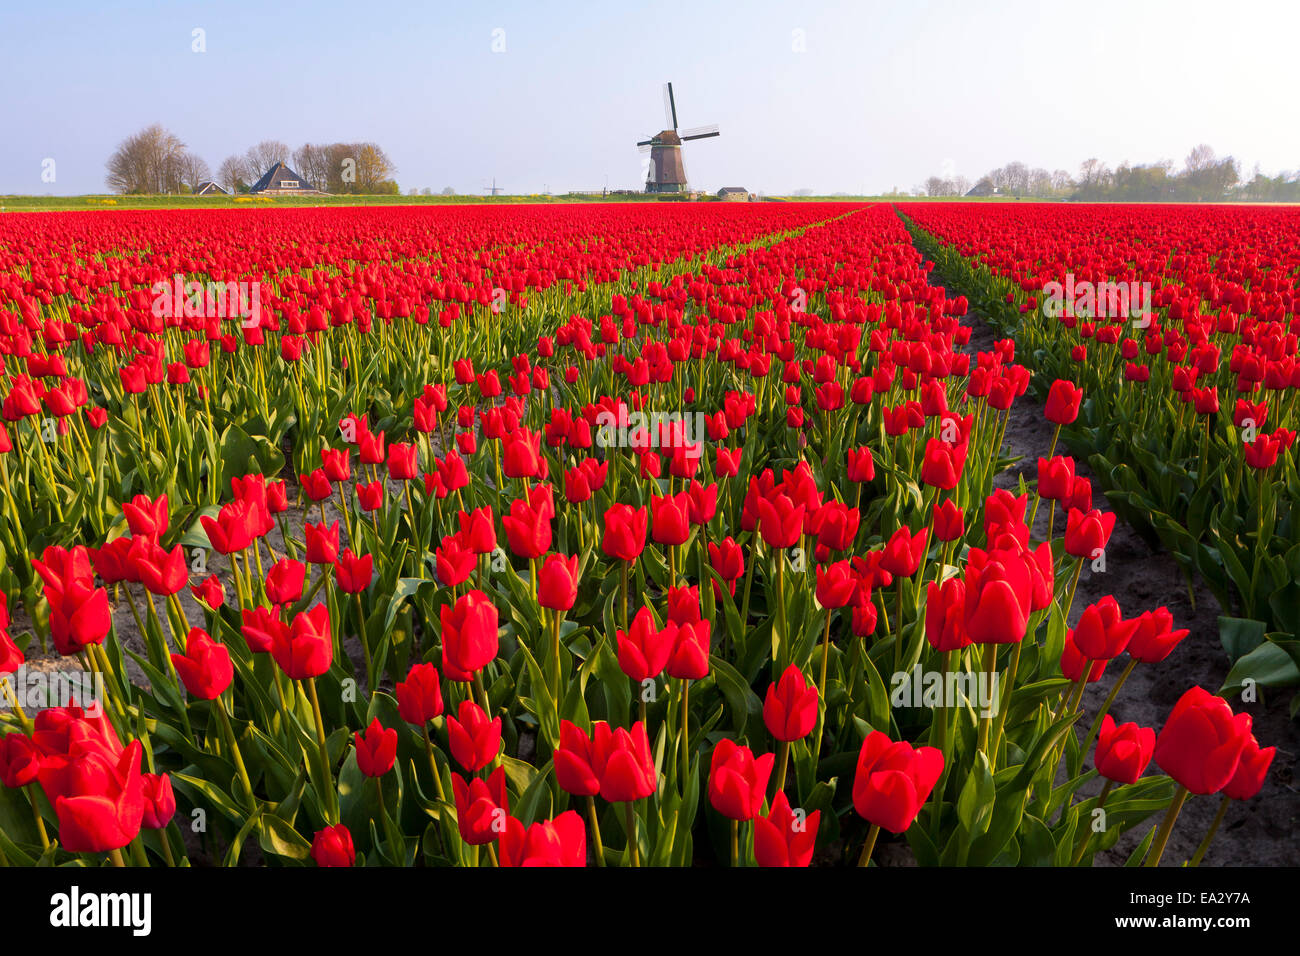 Field of tulips and windmill, near Obdam, North Holland, Netherlands, Europe - Stock Image